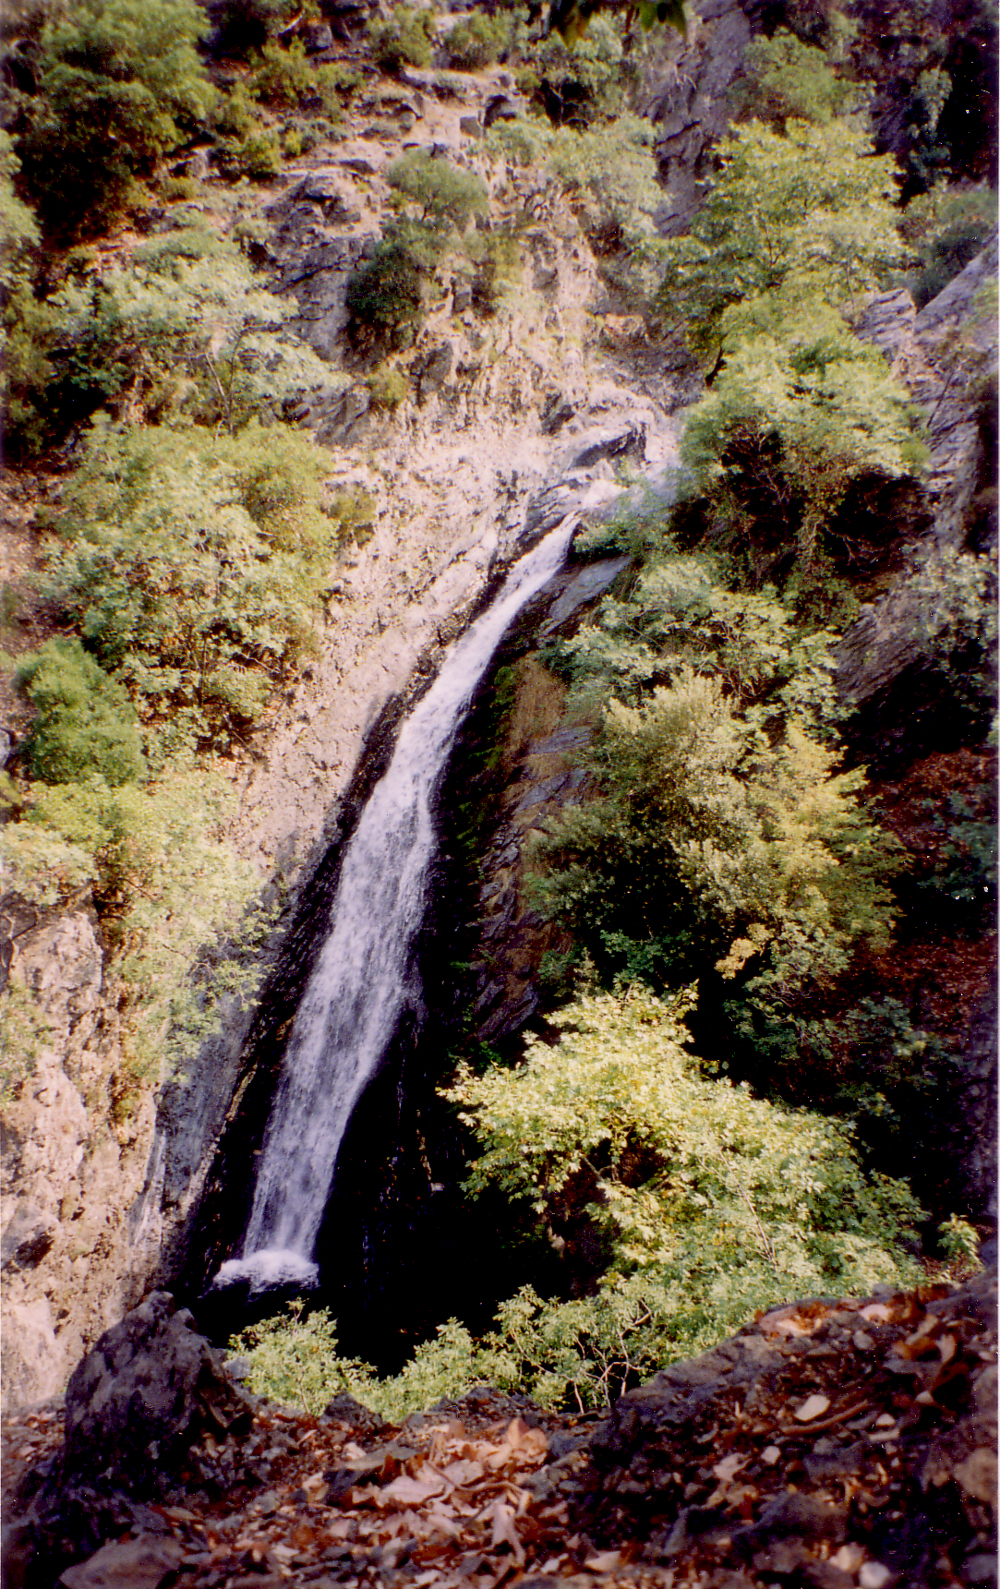 File:Samothraki fonias waterfall.jpg - Wikimedia Commons